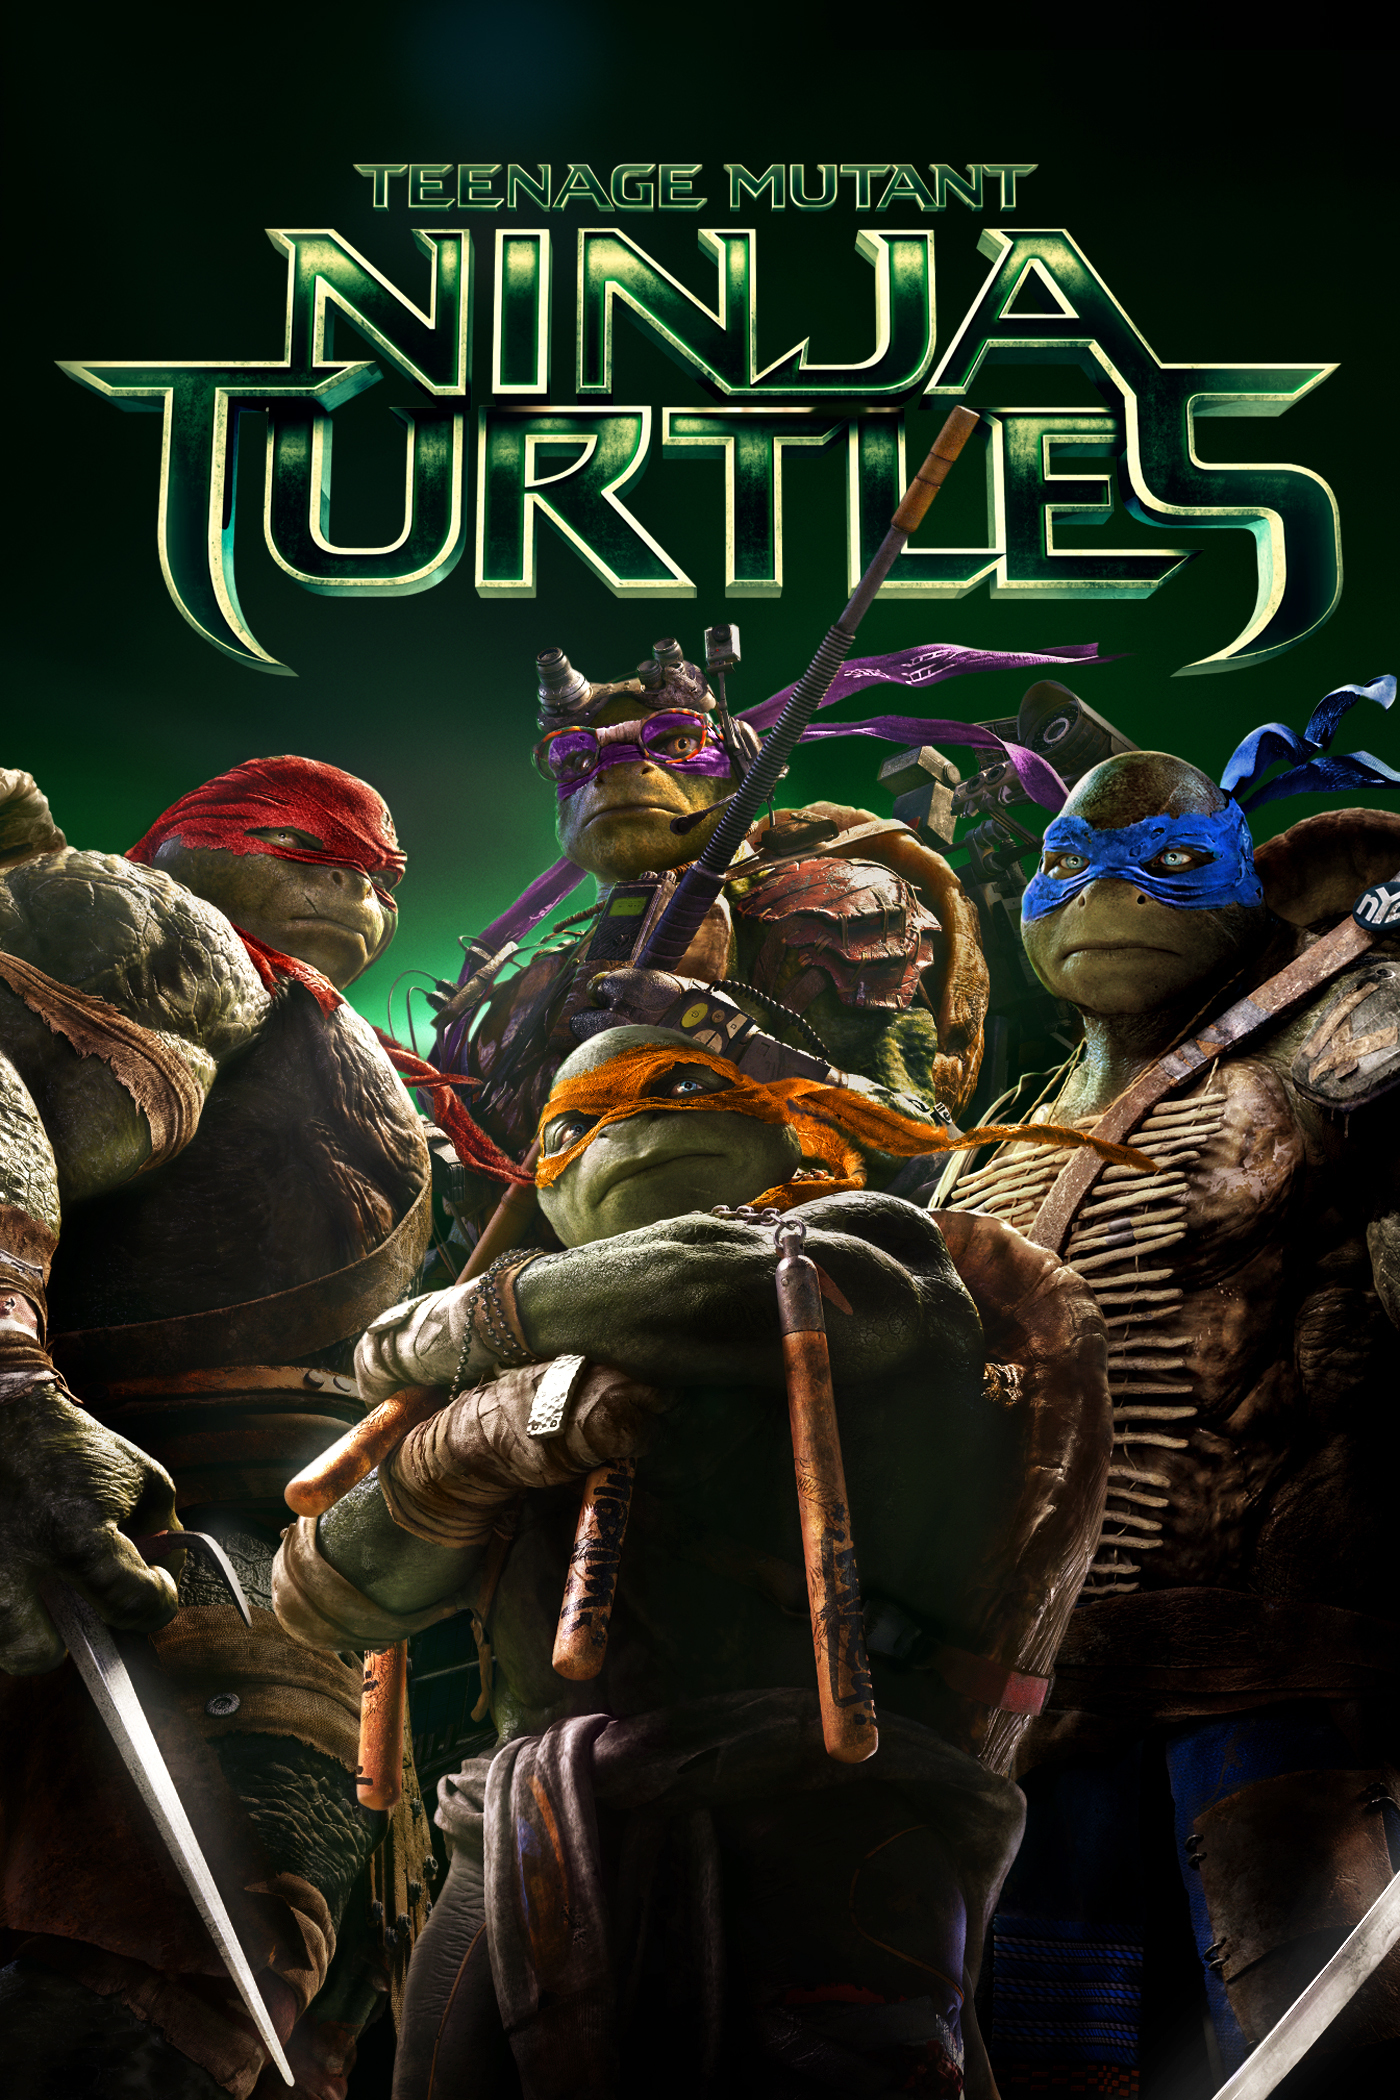 Teenage Mutant Ninja Turtles 2014 Review – Reviewing All ... |Tmnt 2014 Poster 911